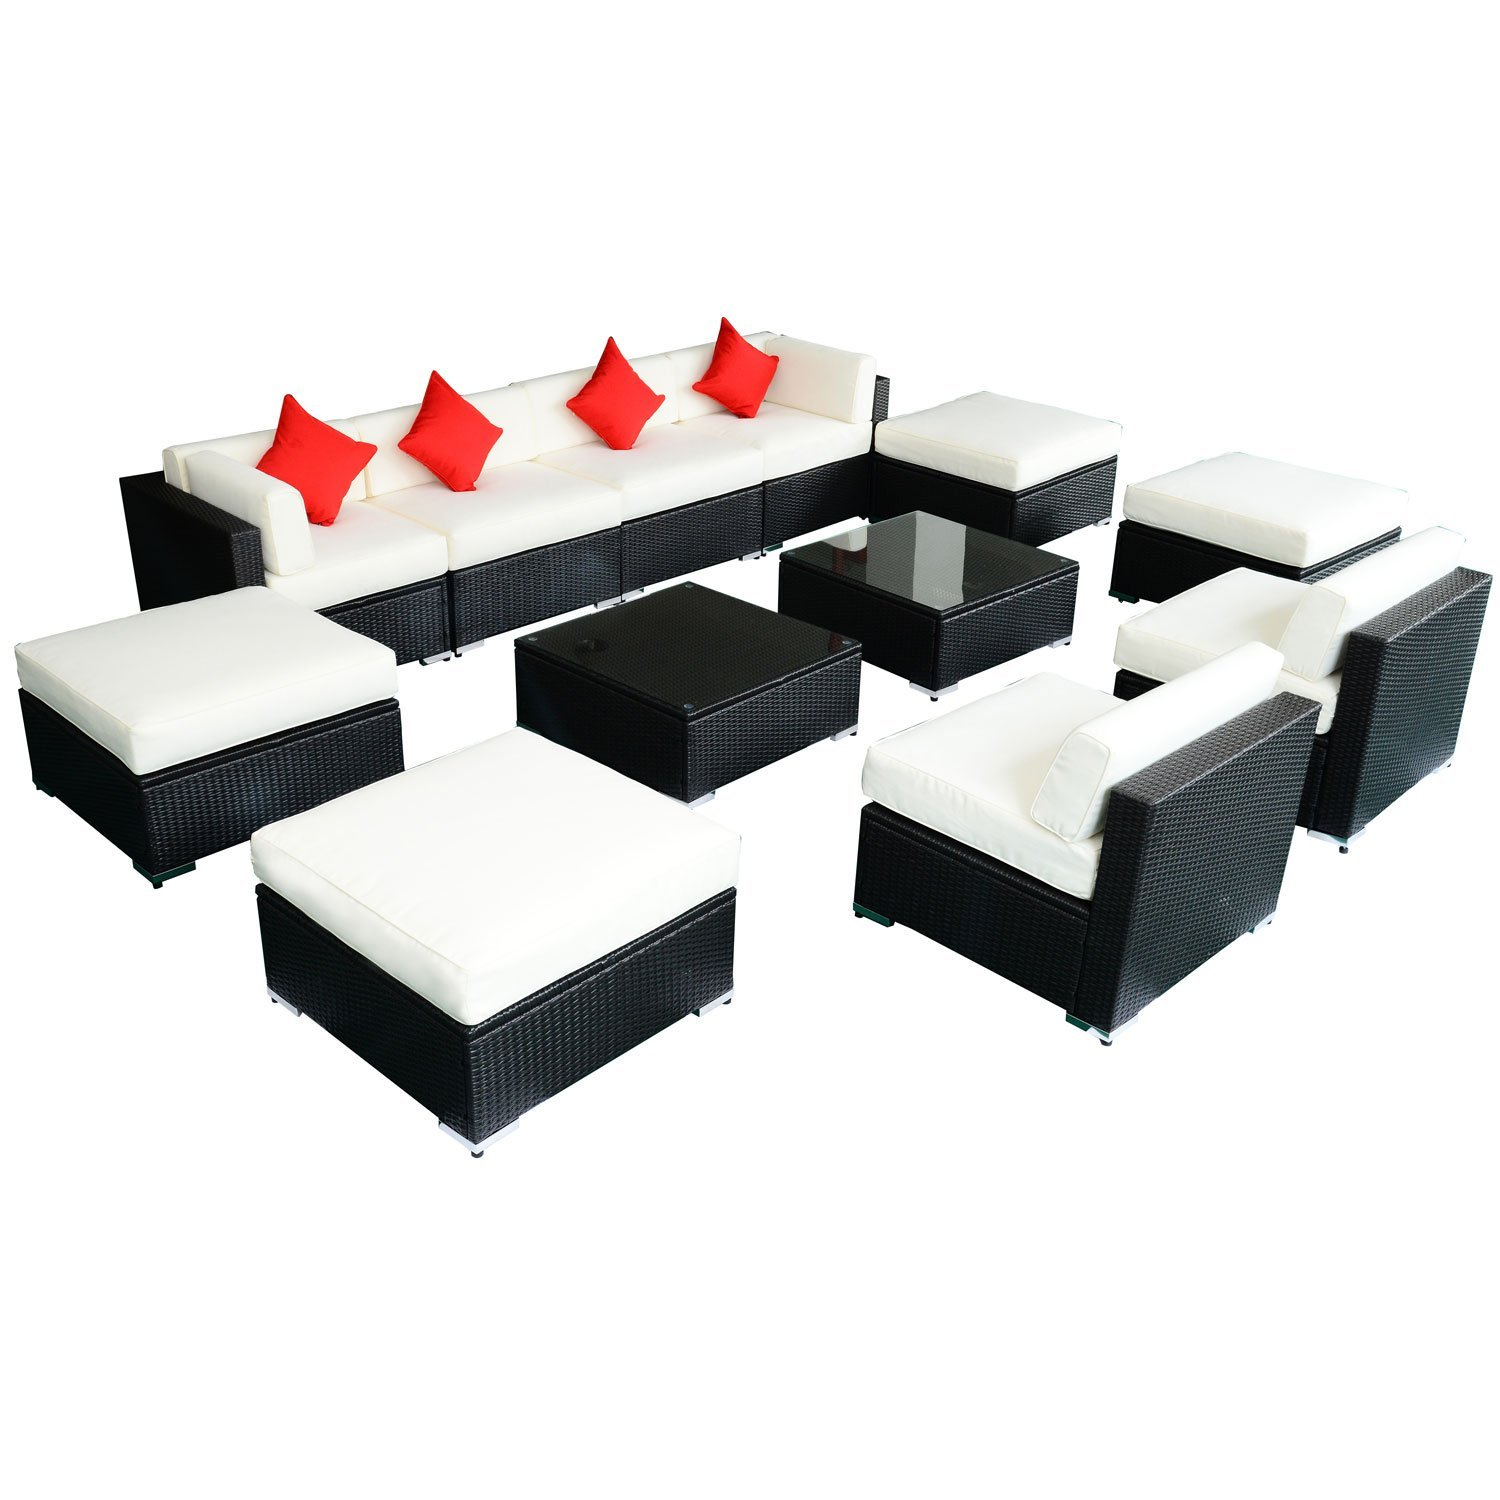 Outsunny 12 pc Outdoor Deluxe Rattan Sofa Sectional Patio